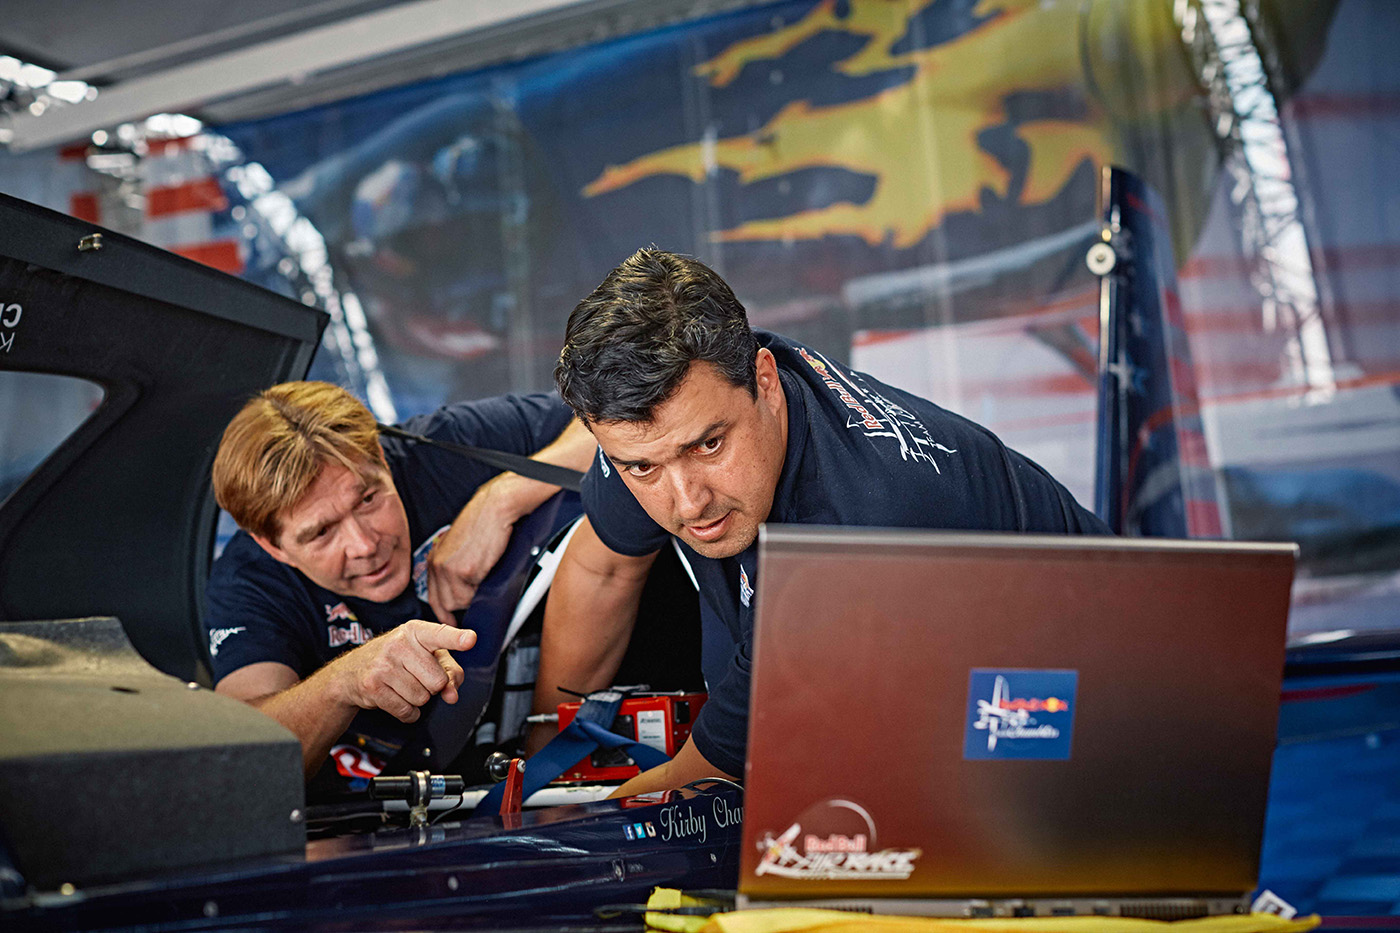 Aerospace engineering professor jets off to the Red Bull Air